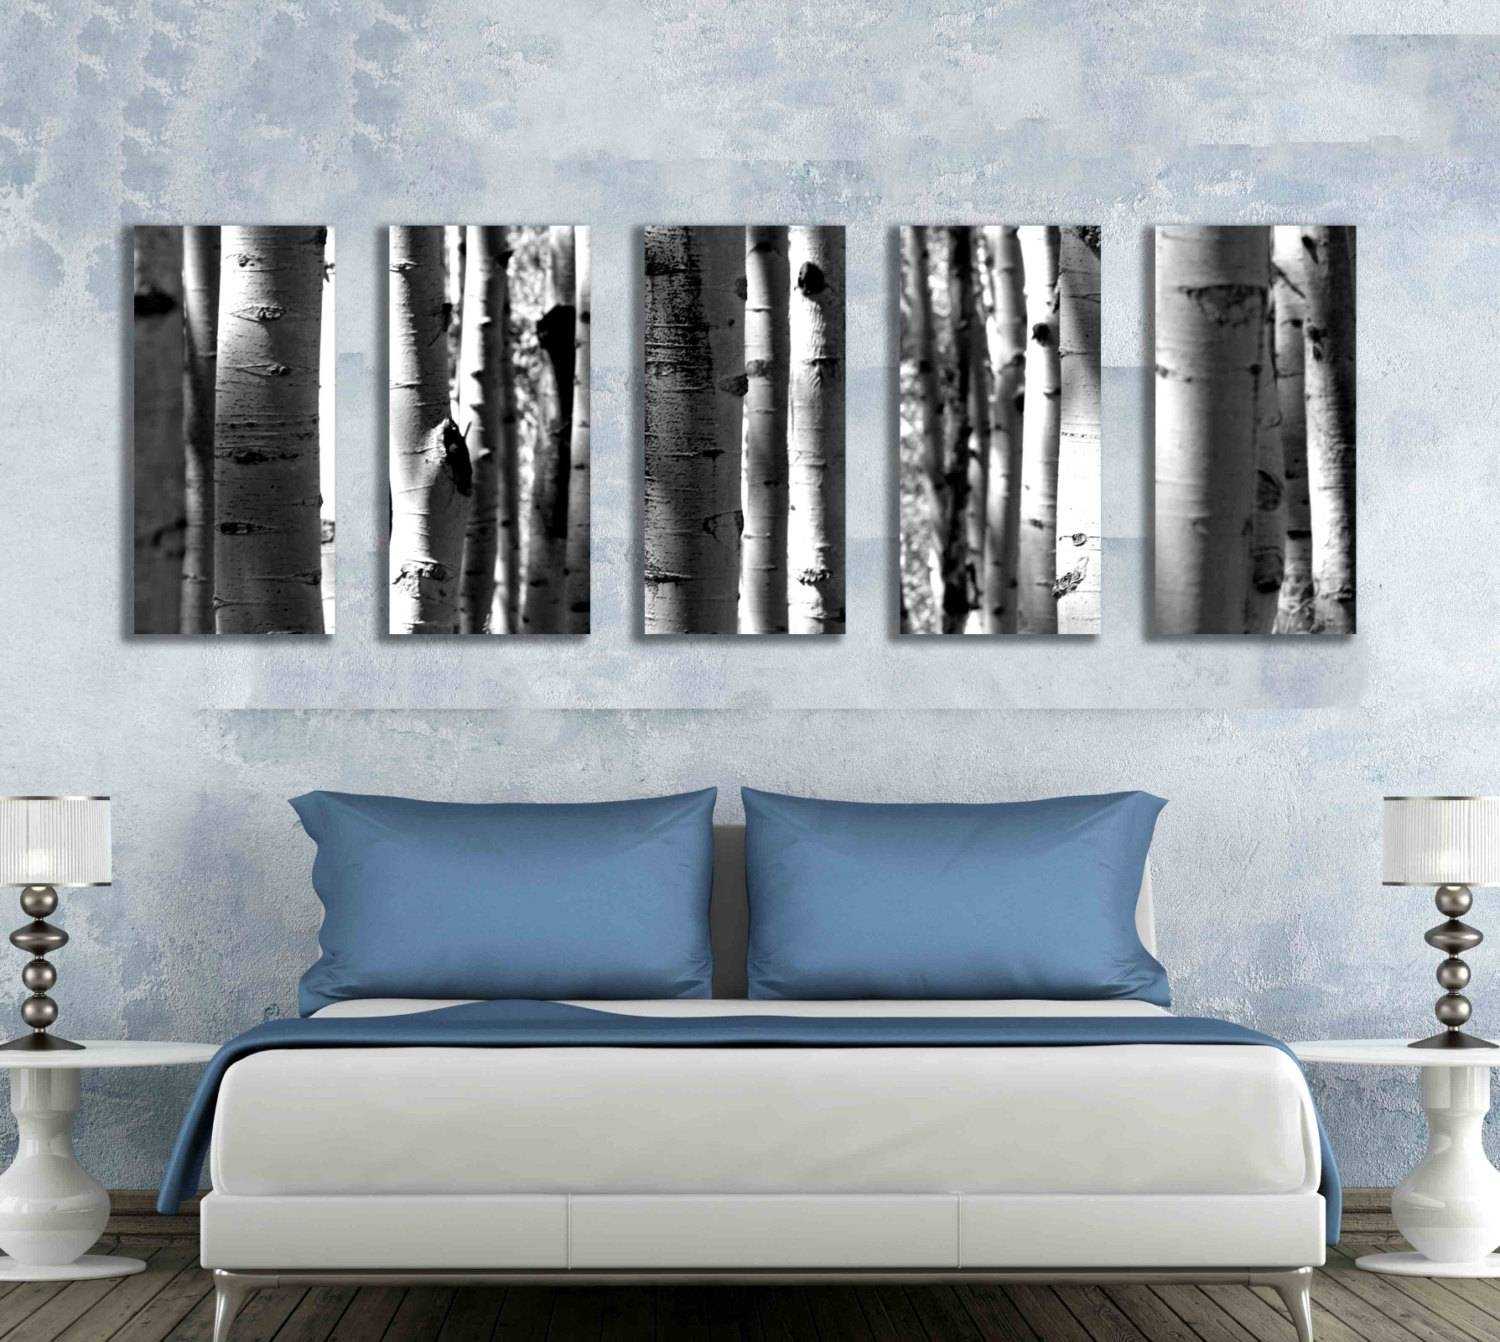 Five Multi Panel 10X20 Inch Canvas Print Black And White Aspen Pertaining To Most Current Aspen Tree Wall Art (View 4 of 20)